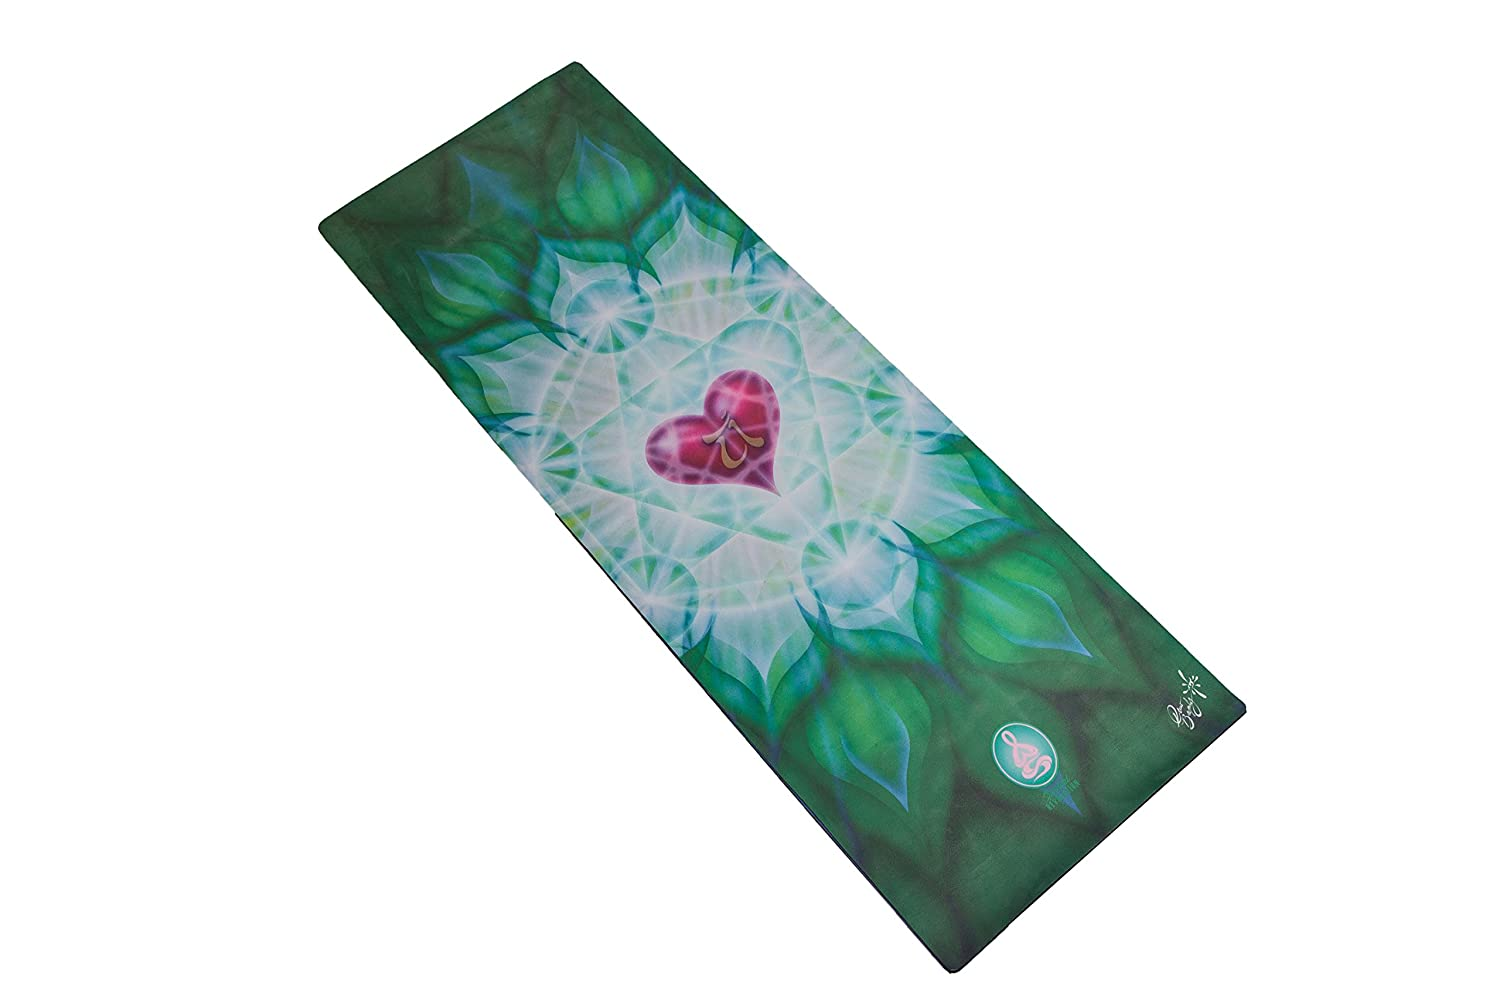 Spiritual Revolution Yoga Combo Mat – Luxury Mat and Towel That Grips While You Sweat. No Slip, PVC Free, and Machine Washable.